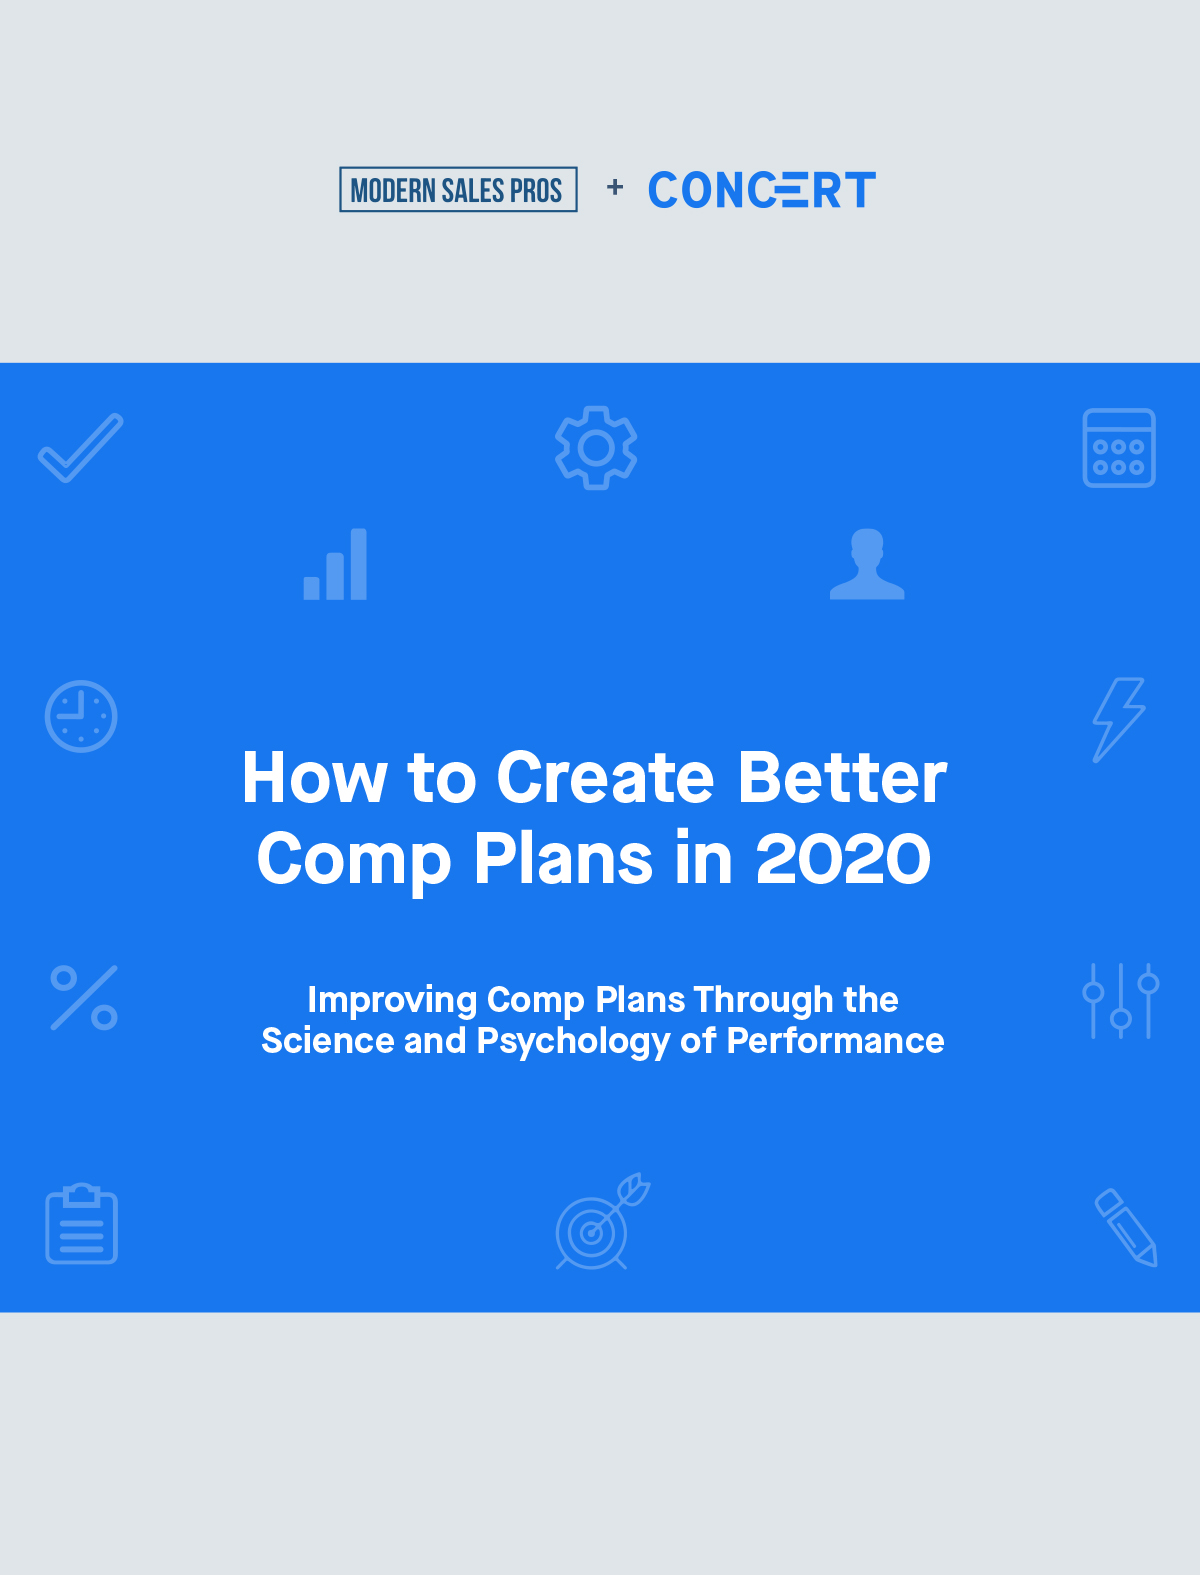 Create Better Comp Plans in 2020